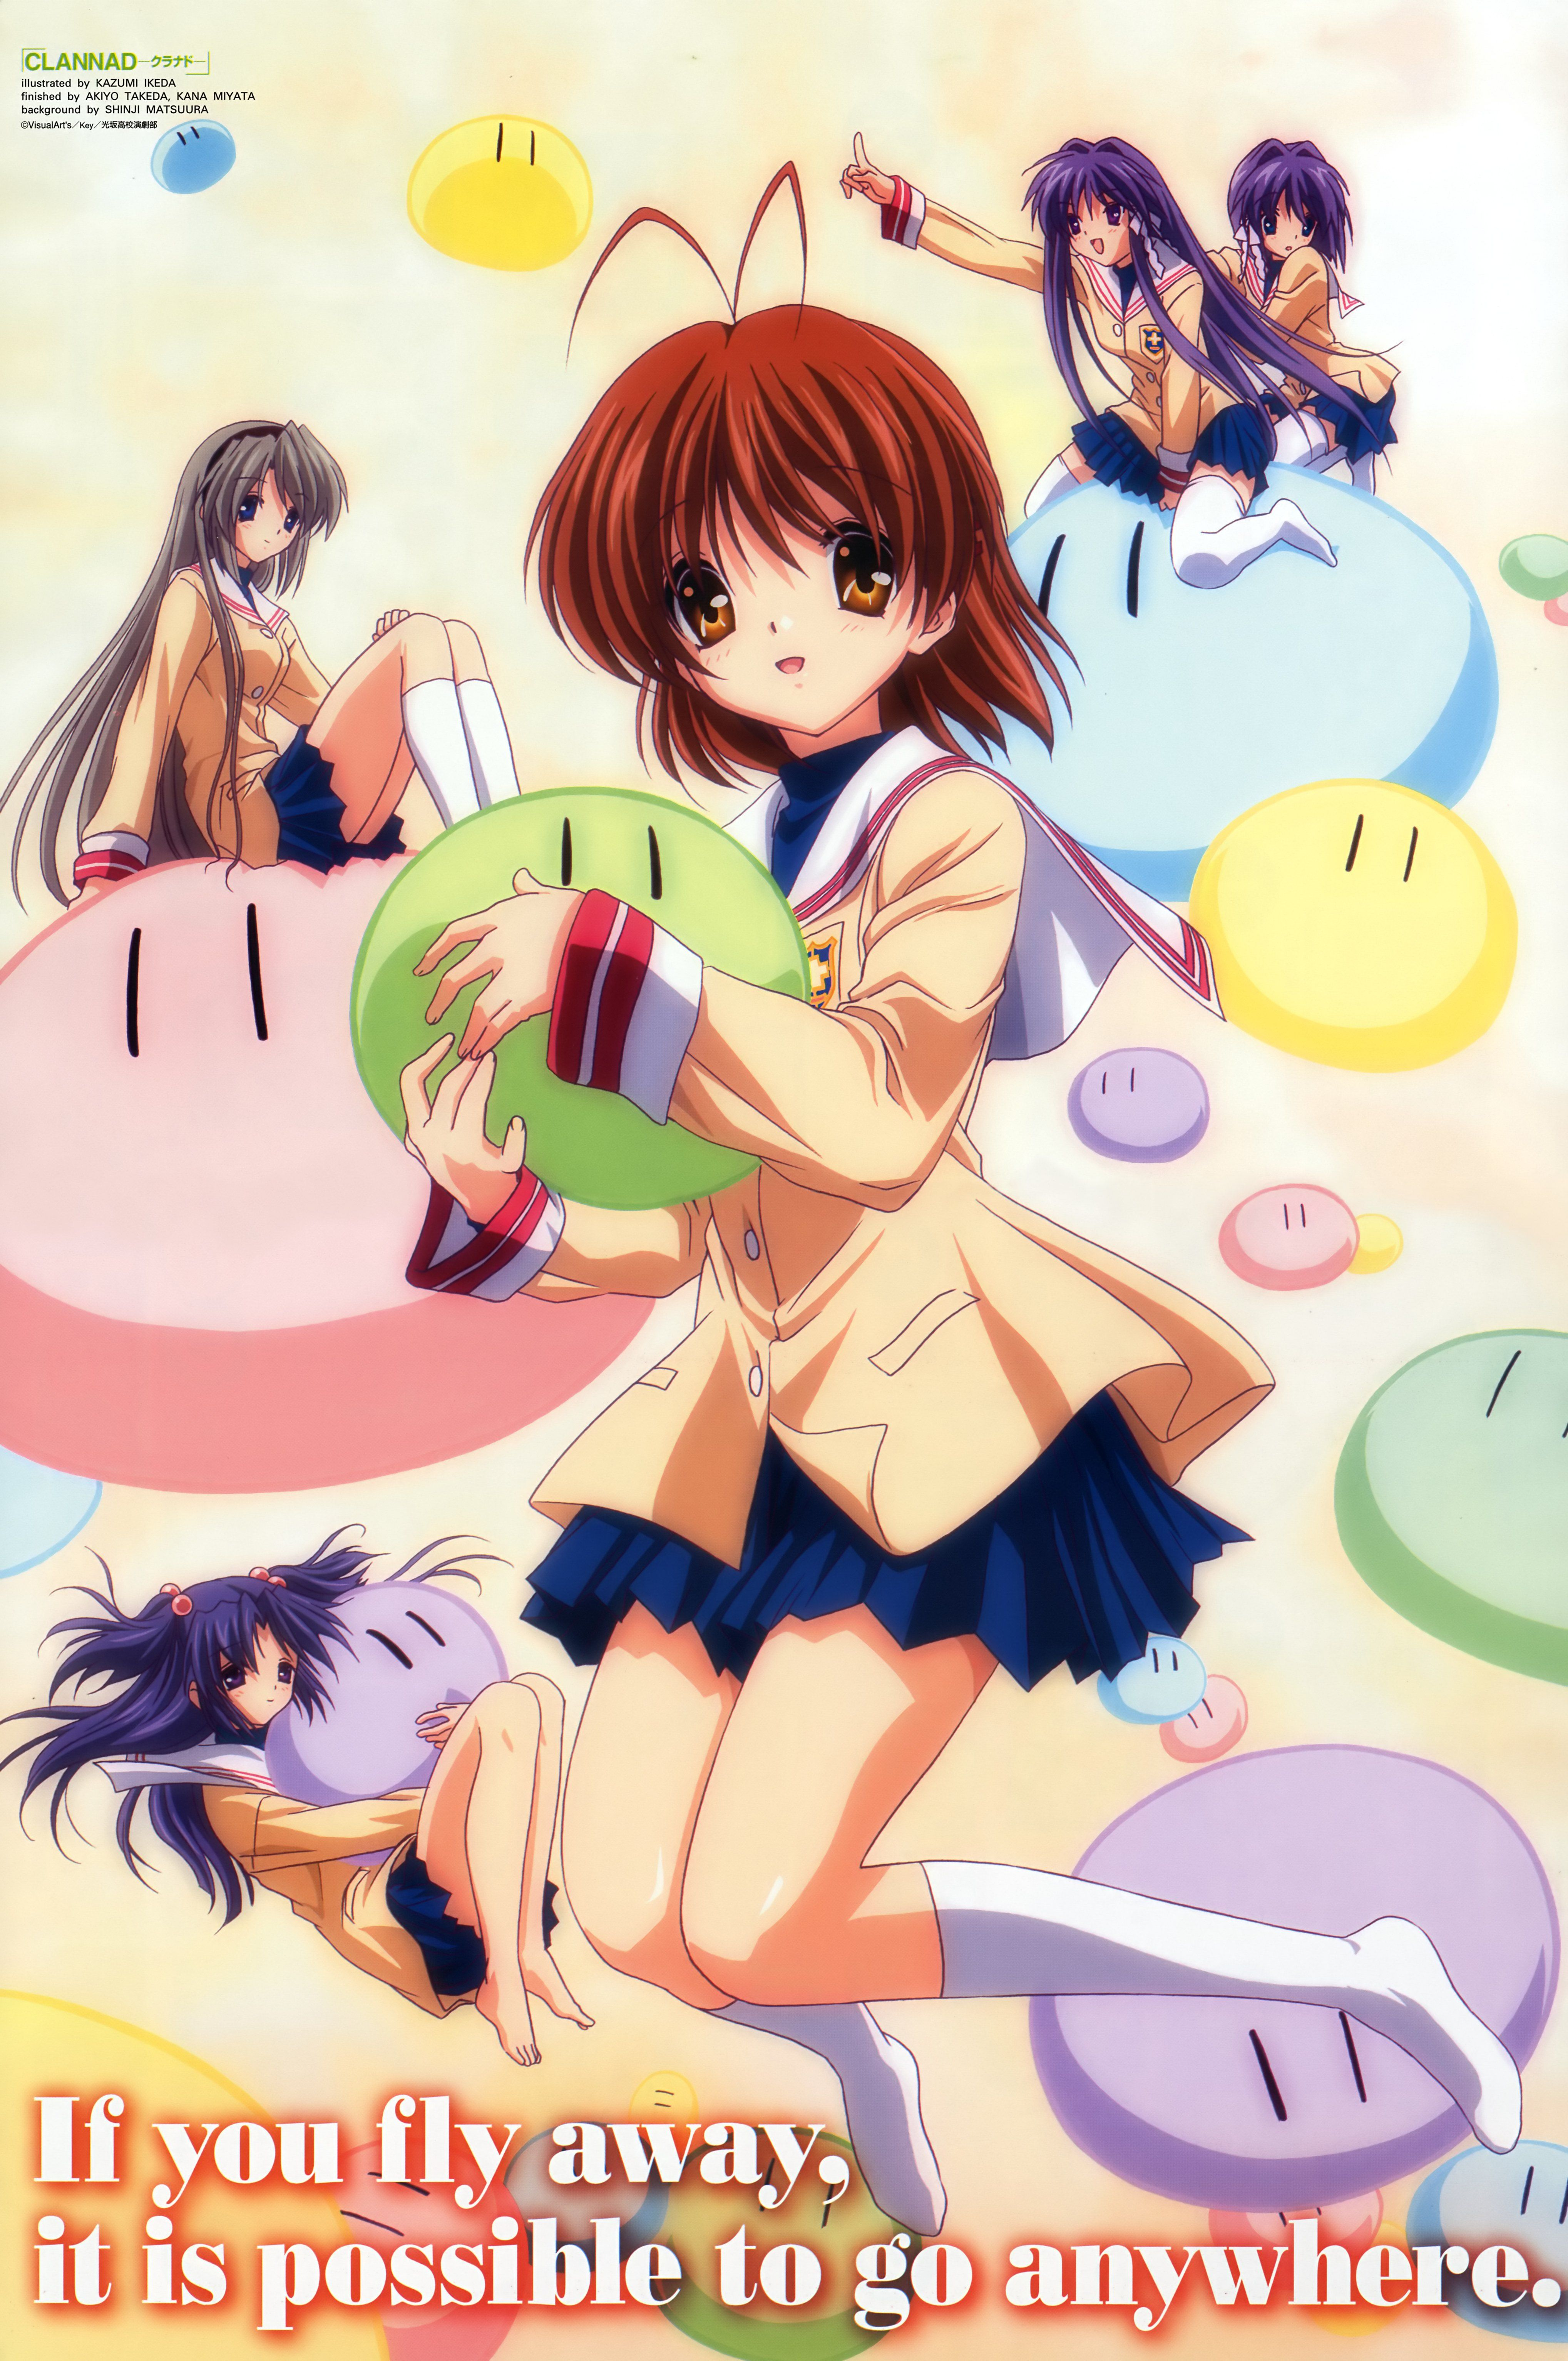 CLANNAD Best Anime Ever